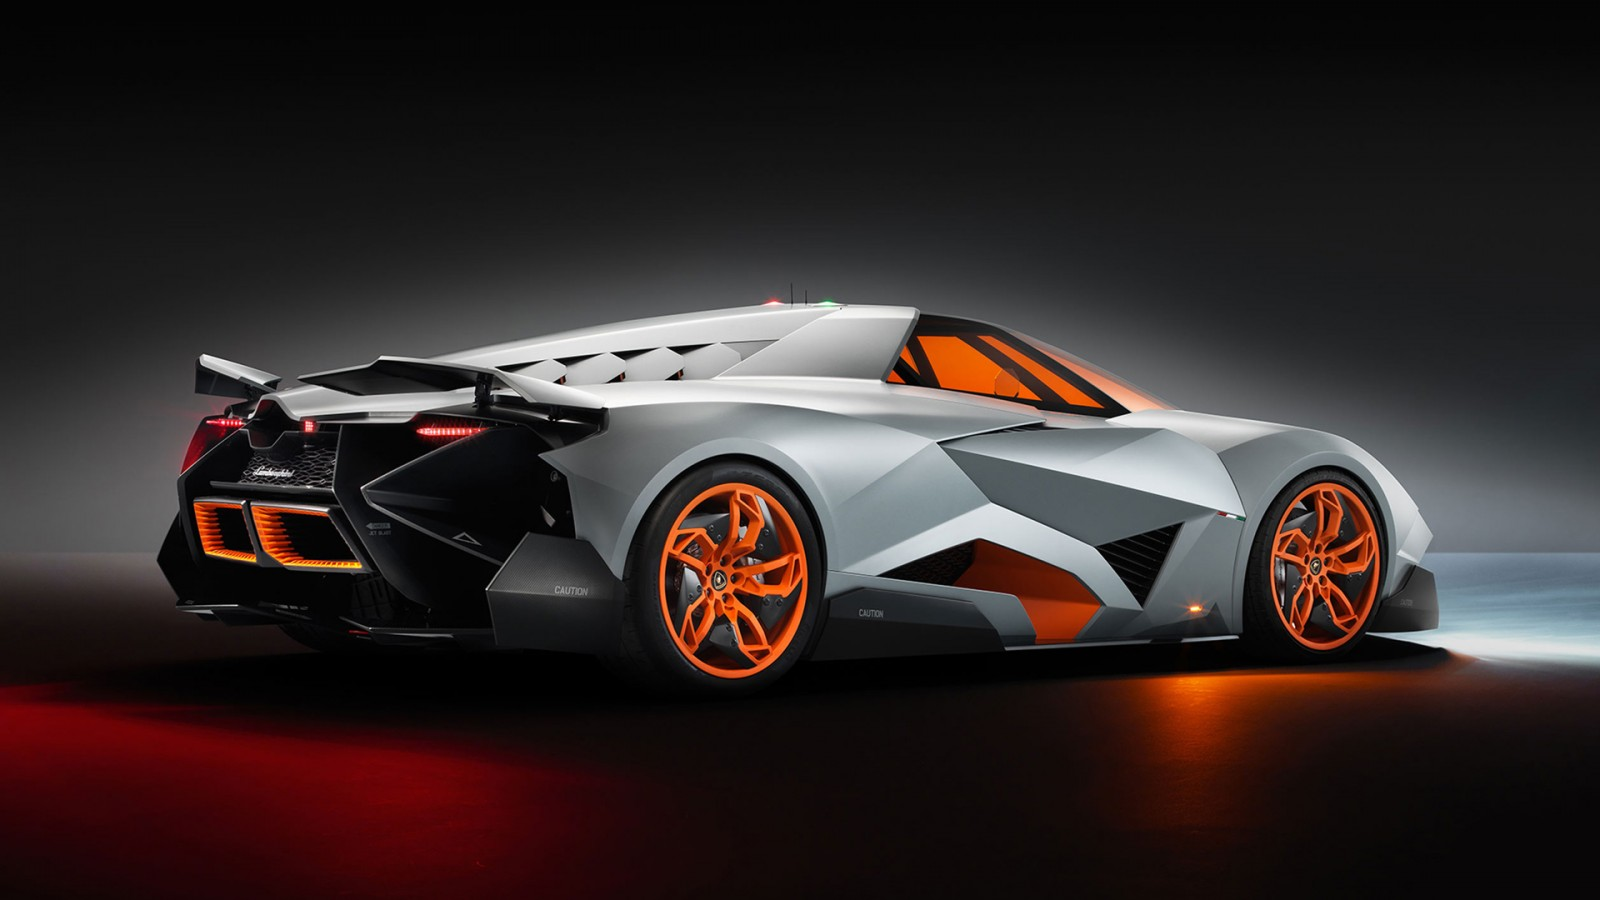 Mustang Wallpaper Iphone X Lamborghini Egoista Concept 2 Wallpaper Hd Car